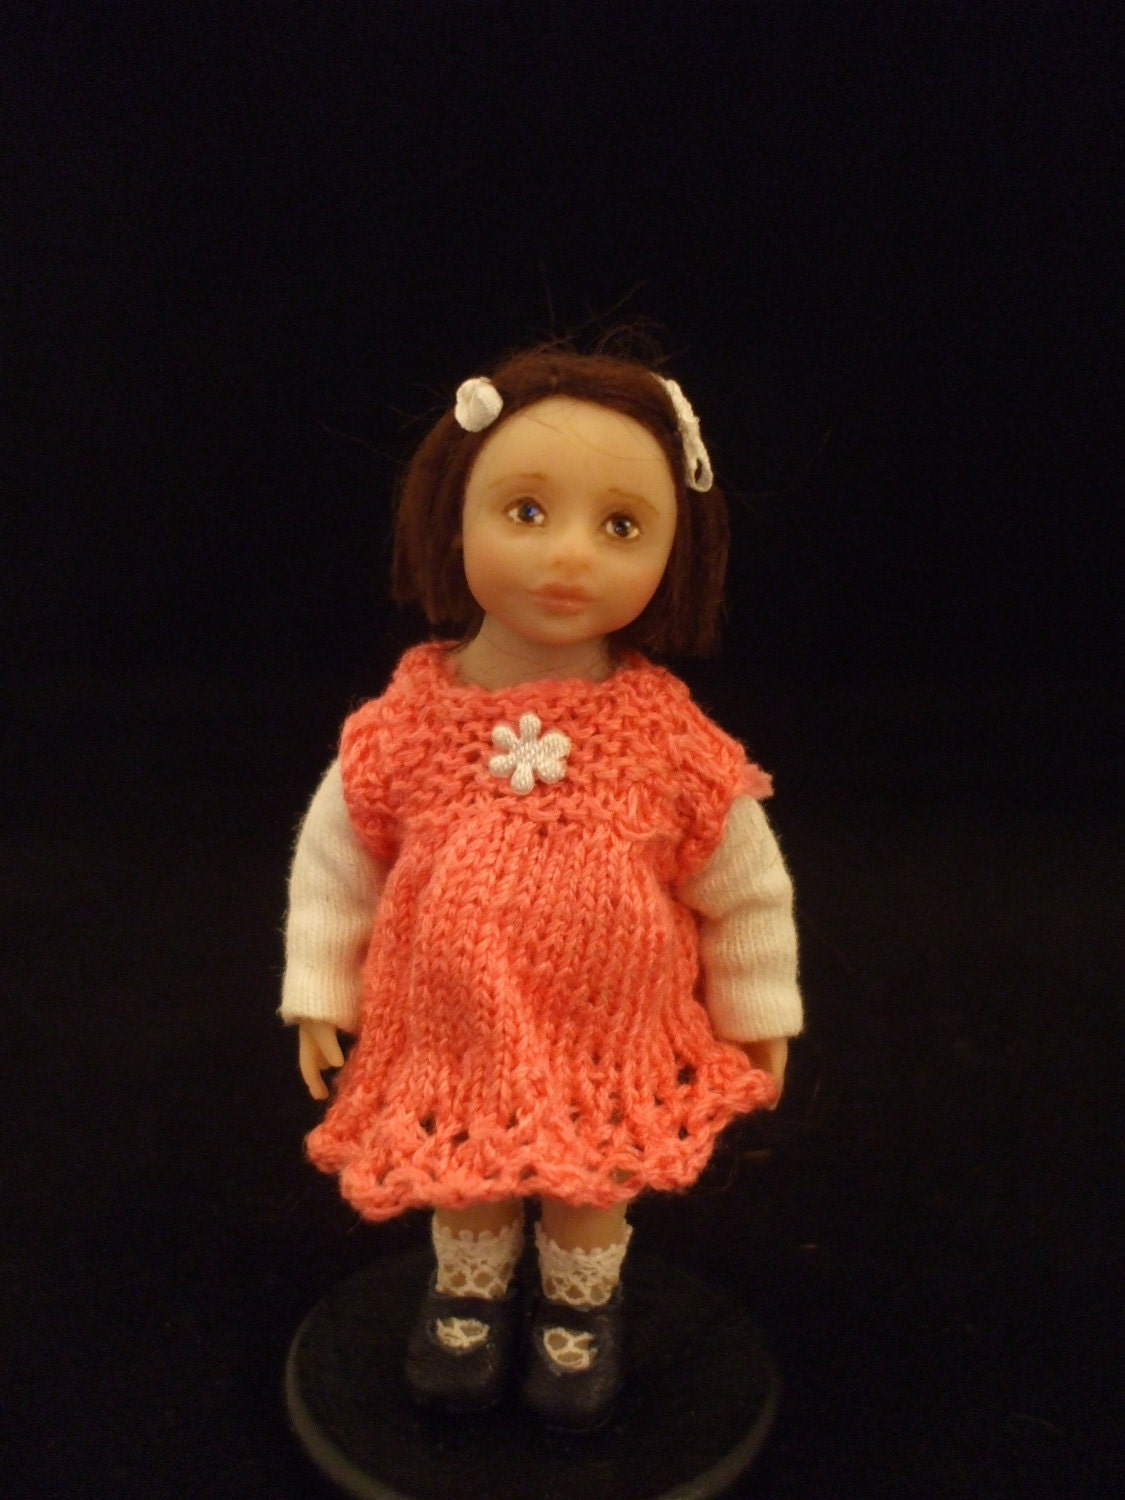 CDHM Artisan Julie Campbell, IGMA Artisan of Bellabelle Dolls, OOAK hand sculpted 1:12 scale Child Doll